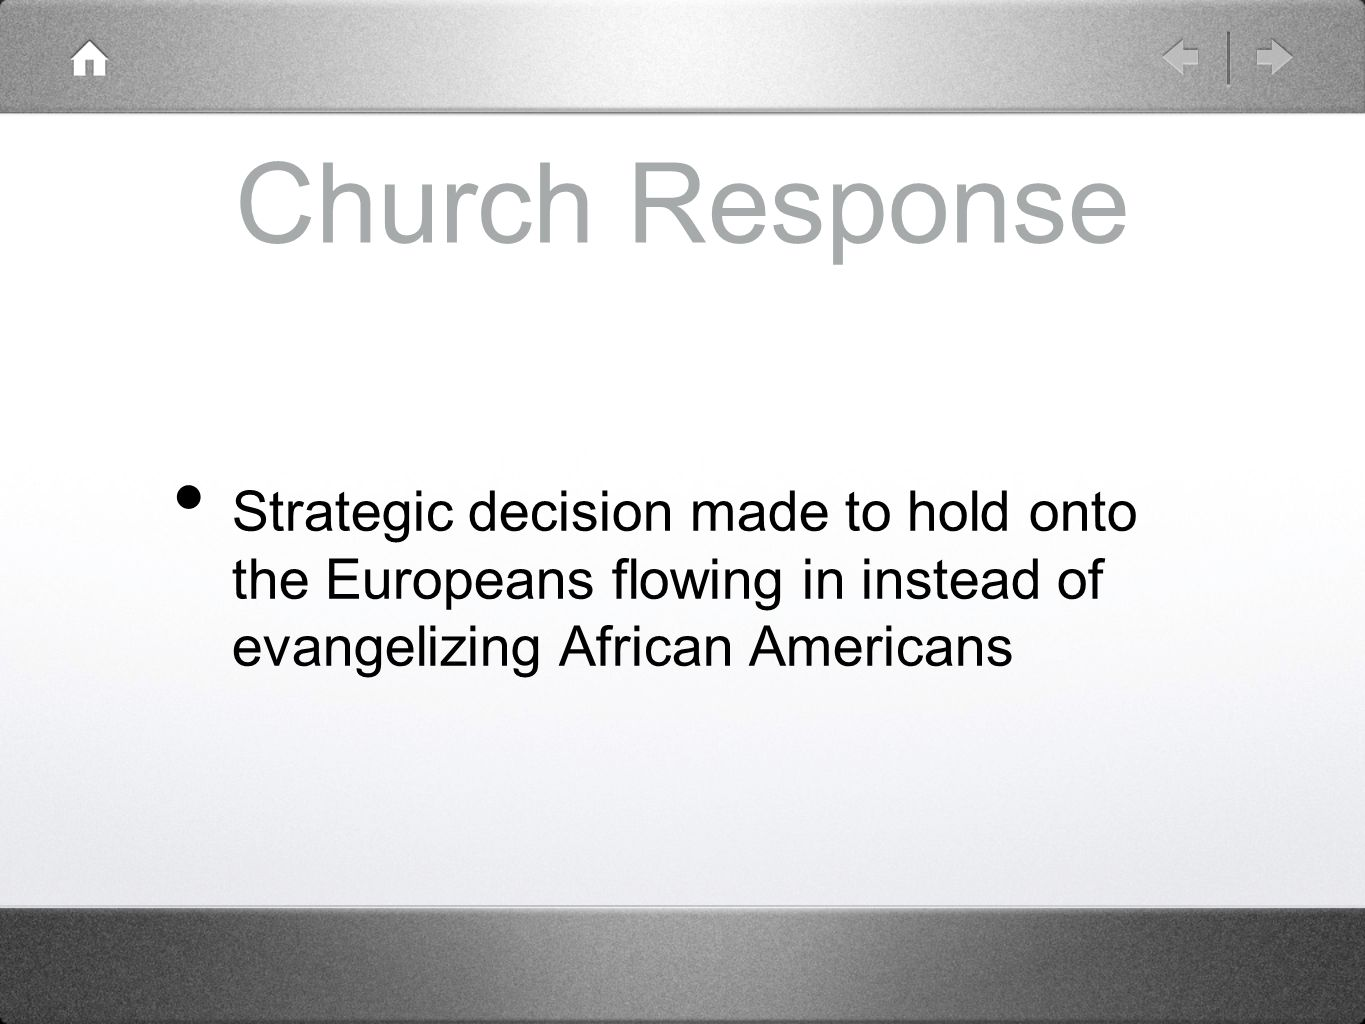 Church Response Strategic decision made to hold onto the Europeans flowing in instead of evangelizing African Americans.